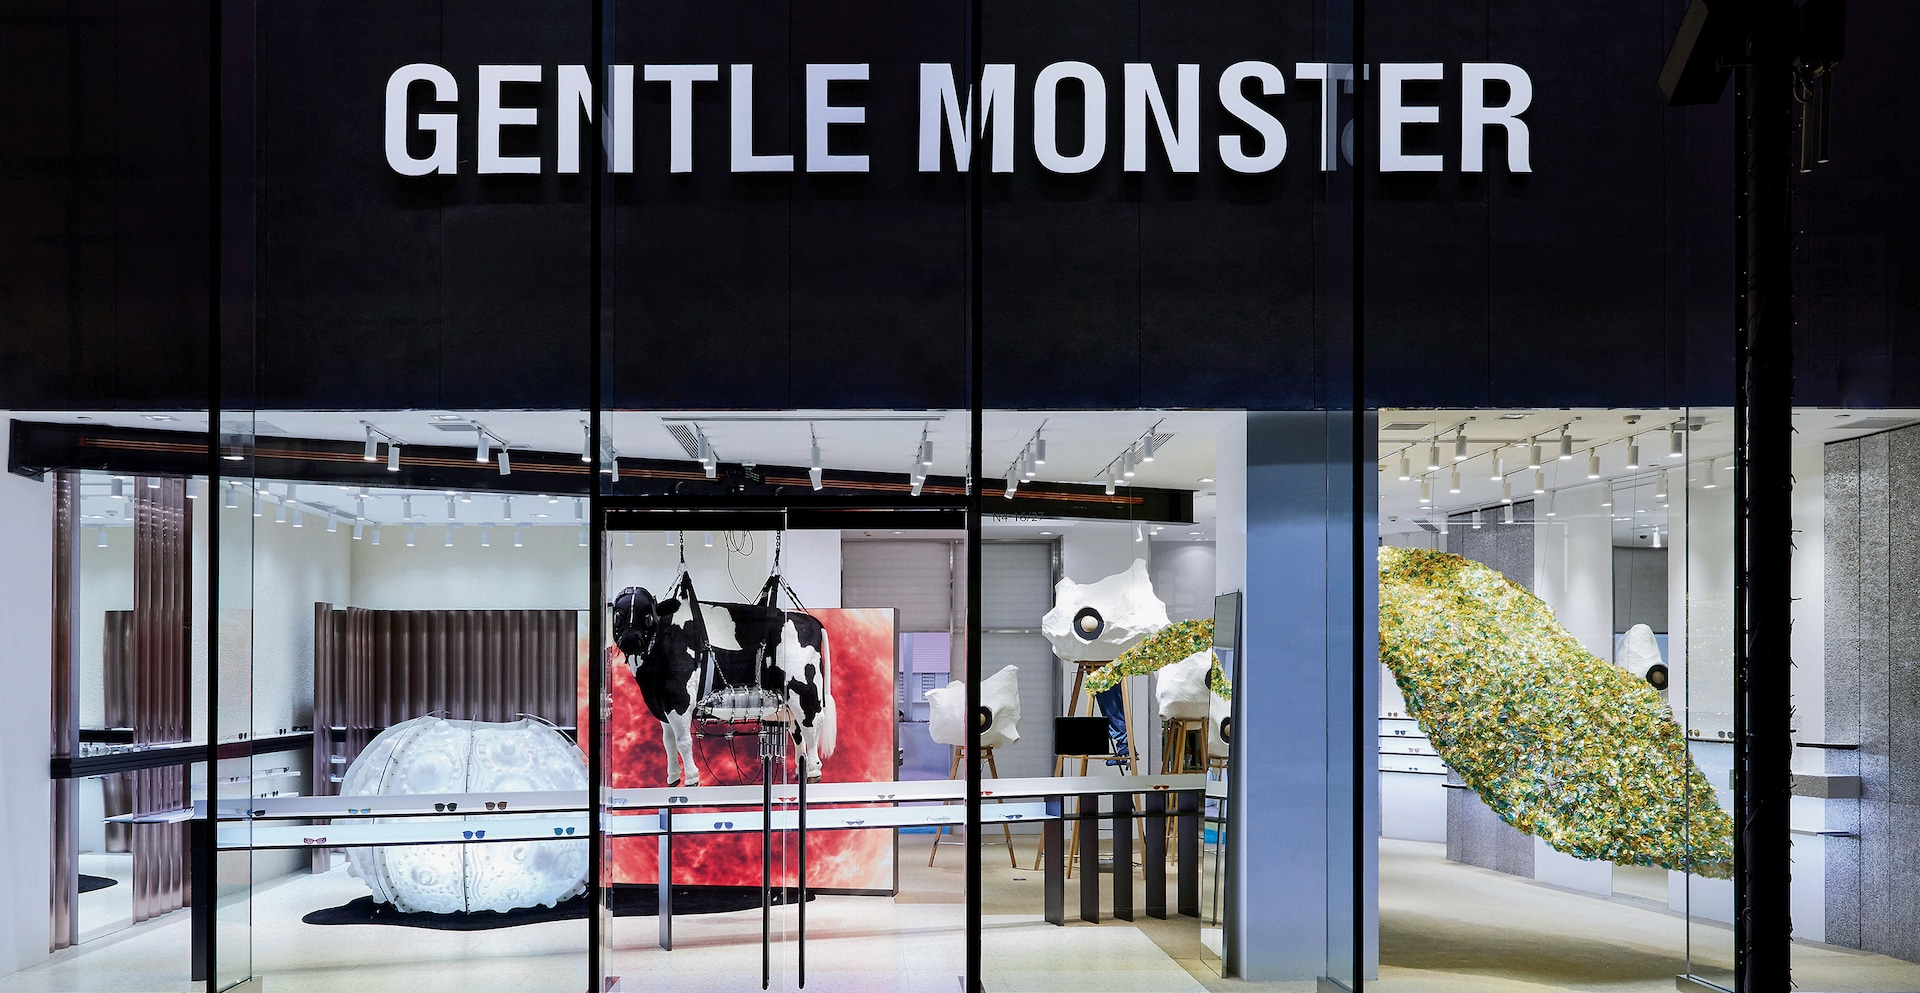 9ad212d440a 1 of 7. Beijing s Taikooli flagship store s 3rd renewal  The Navigator   depicts a part of Gentle Monster s ...